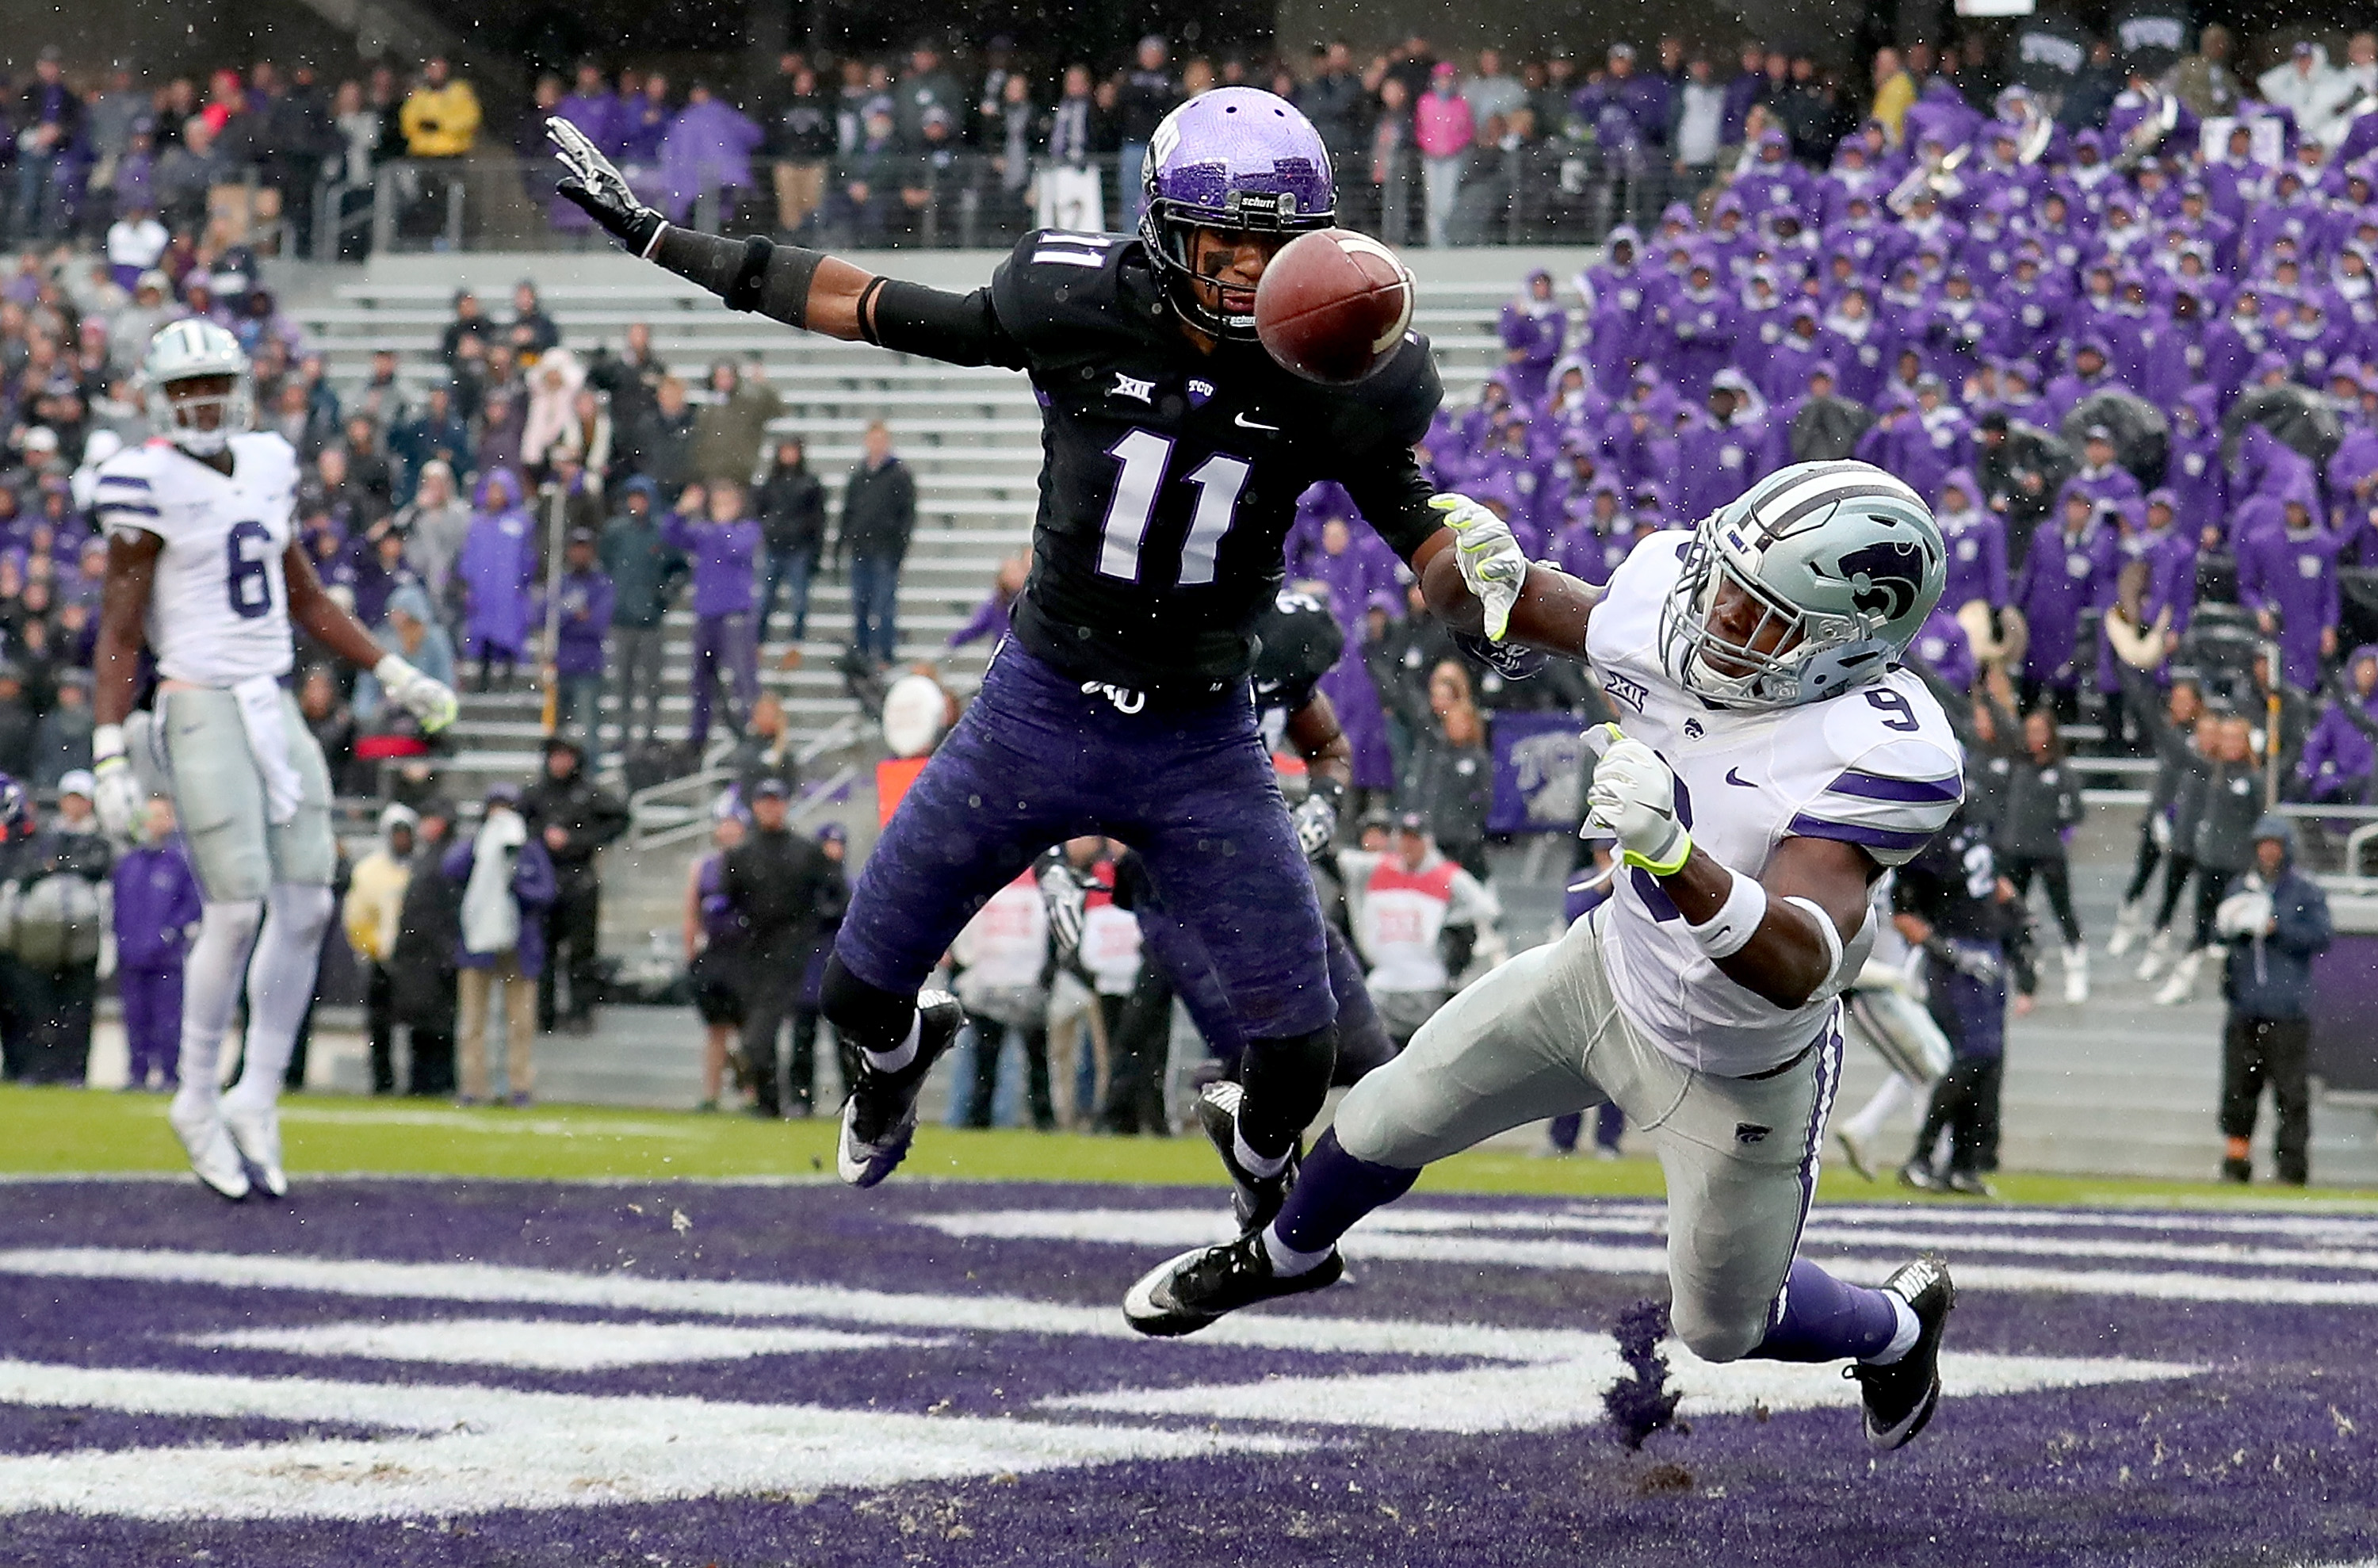 054bae9bb7 2017 TCU Position Preview  Defensive Backs - Frogs O  War